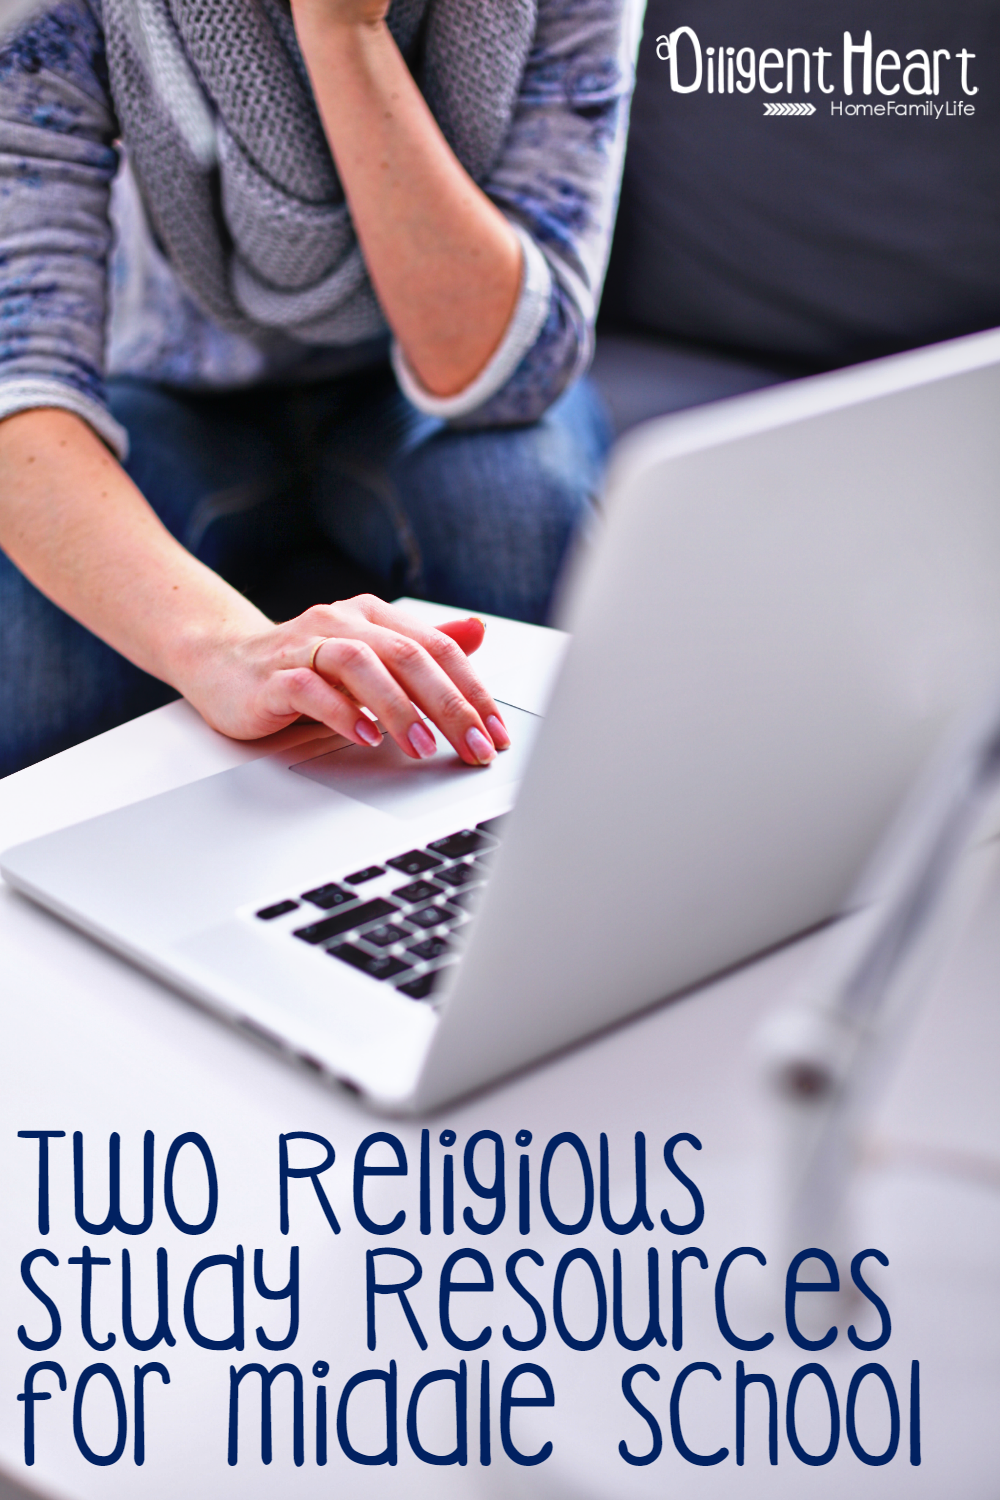 Don't you just love it when you can find FREE online resource for your homeschool (or for anything for that matter)?! I'm sharing today two of my favorite totally free online religious study resources that we like to use in our homeschool!